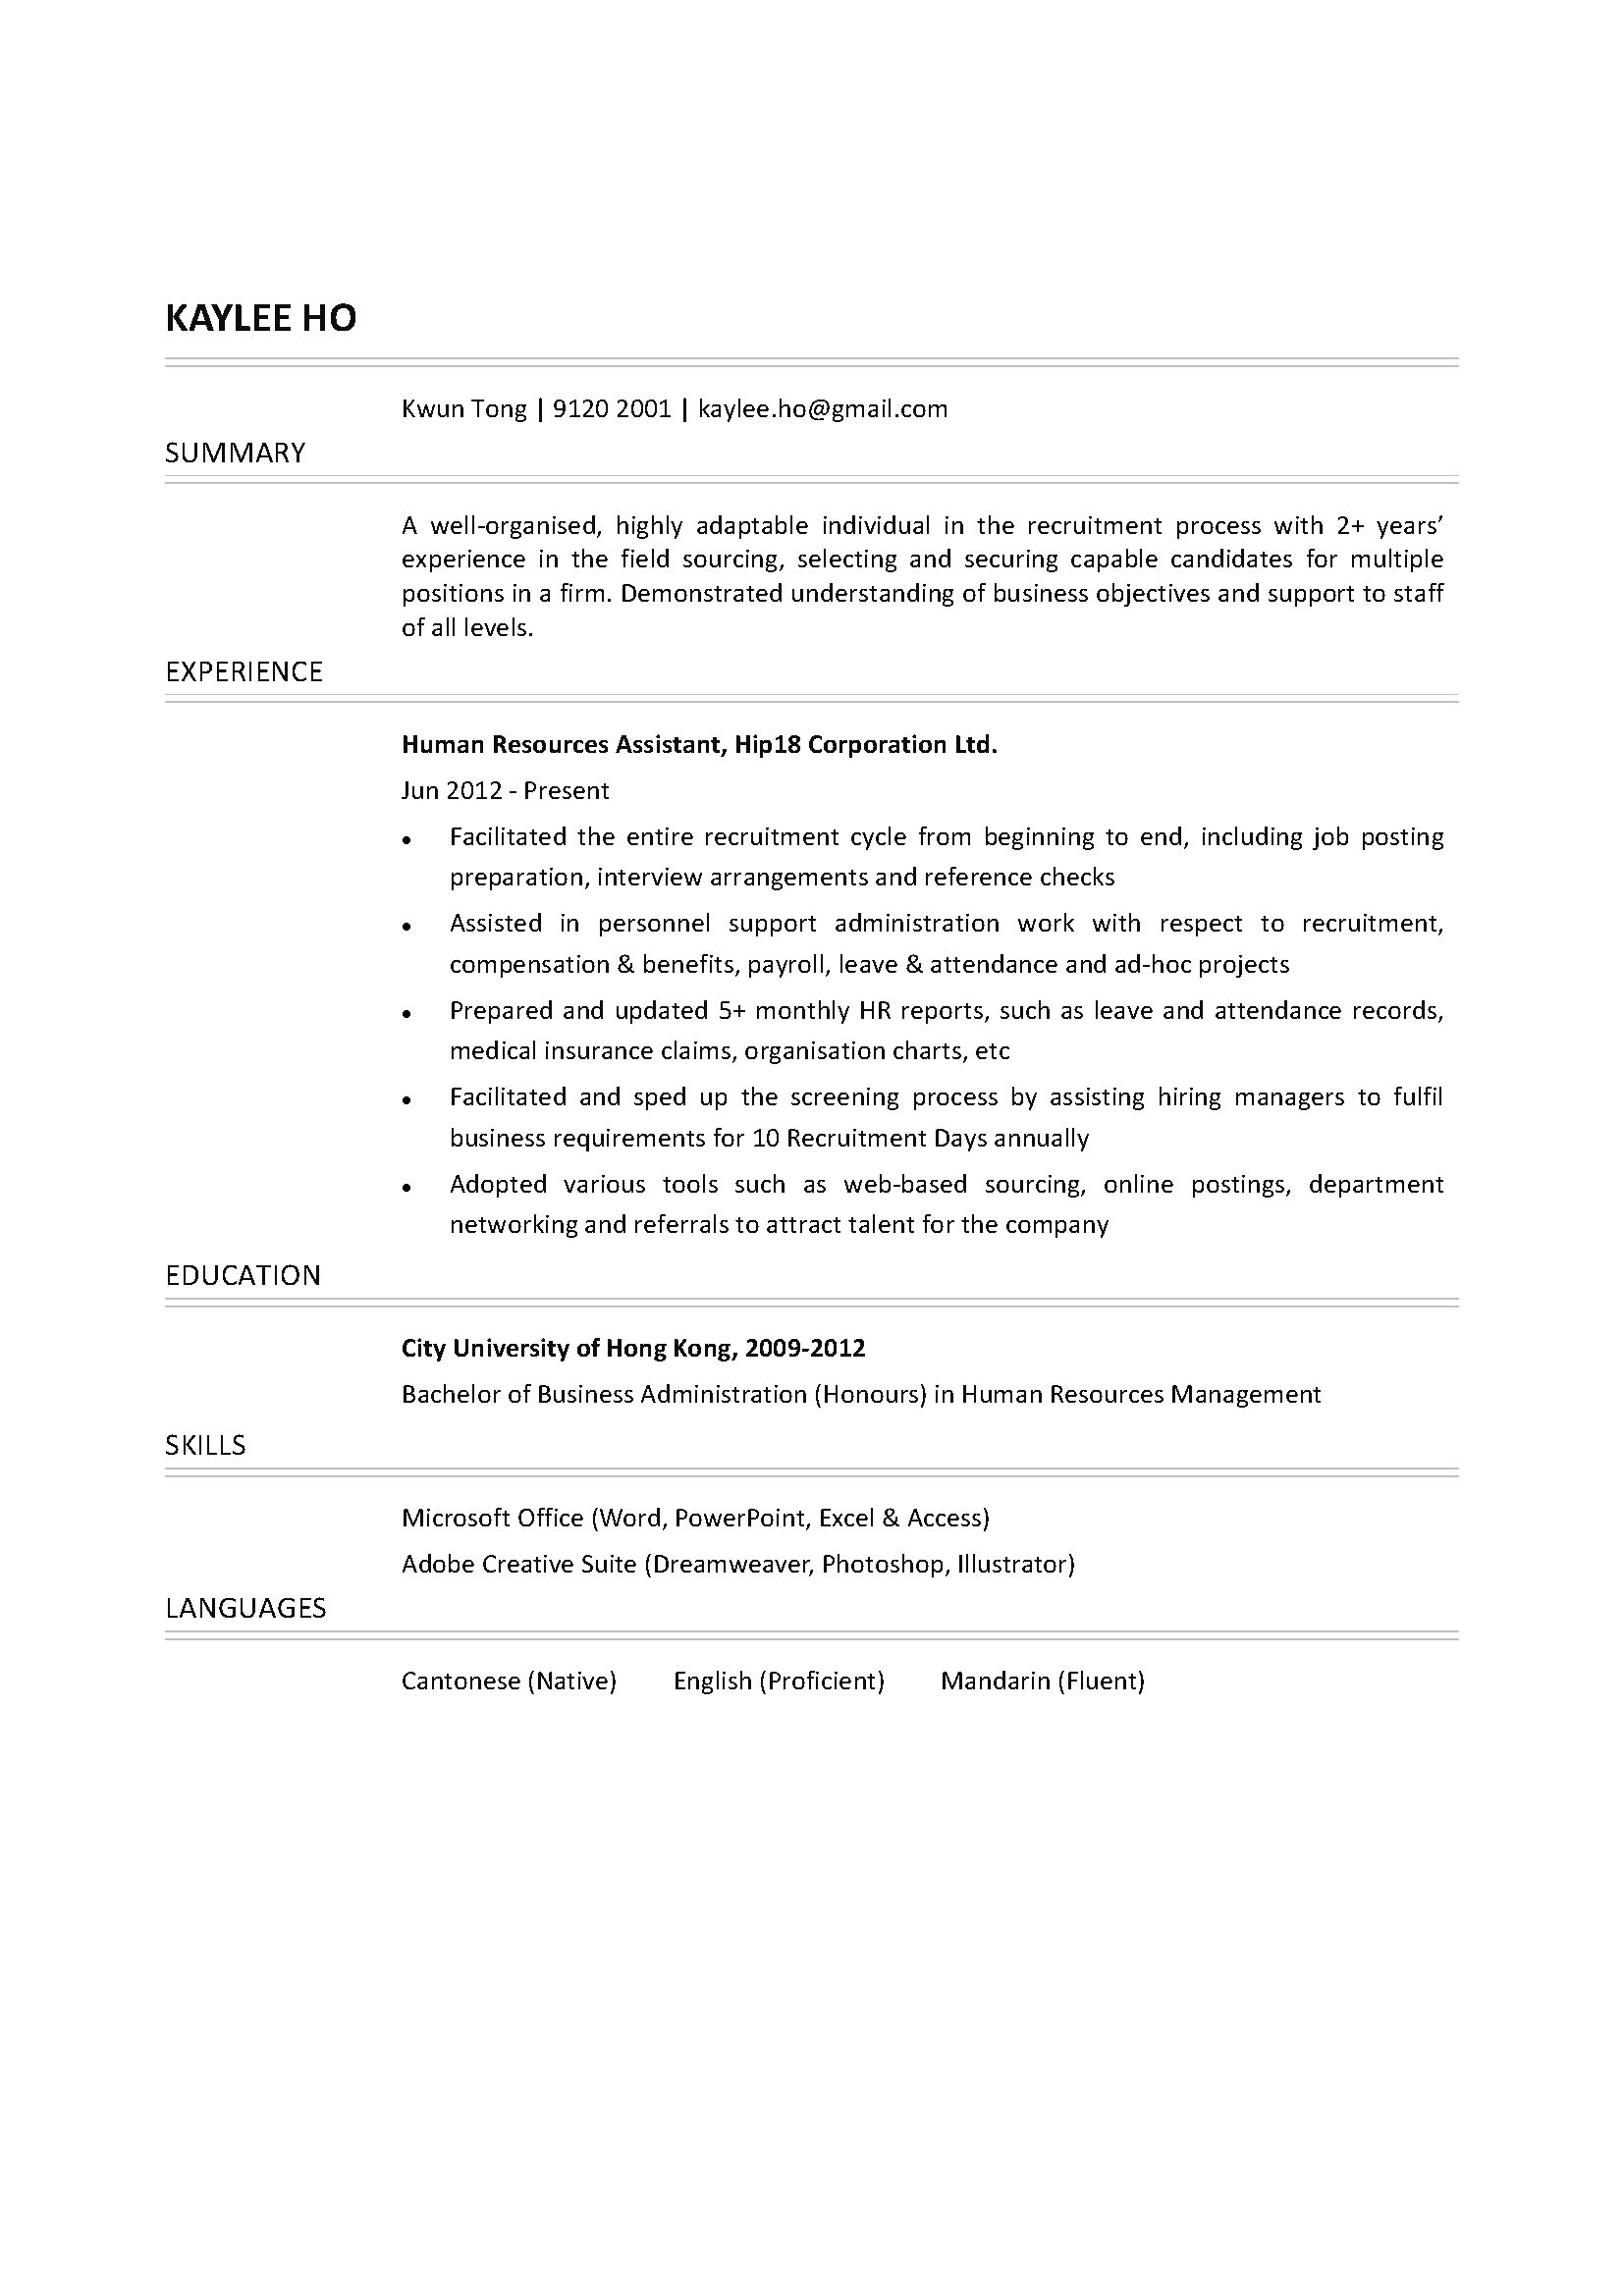 Sample Resume For Hr Assistant Human Resources Assistant Cv Ctgoodjobs Powered By